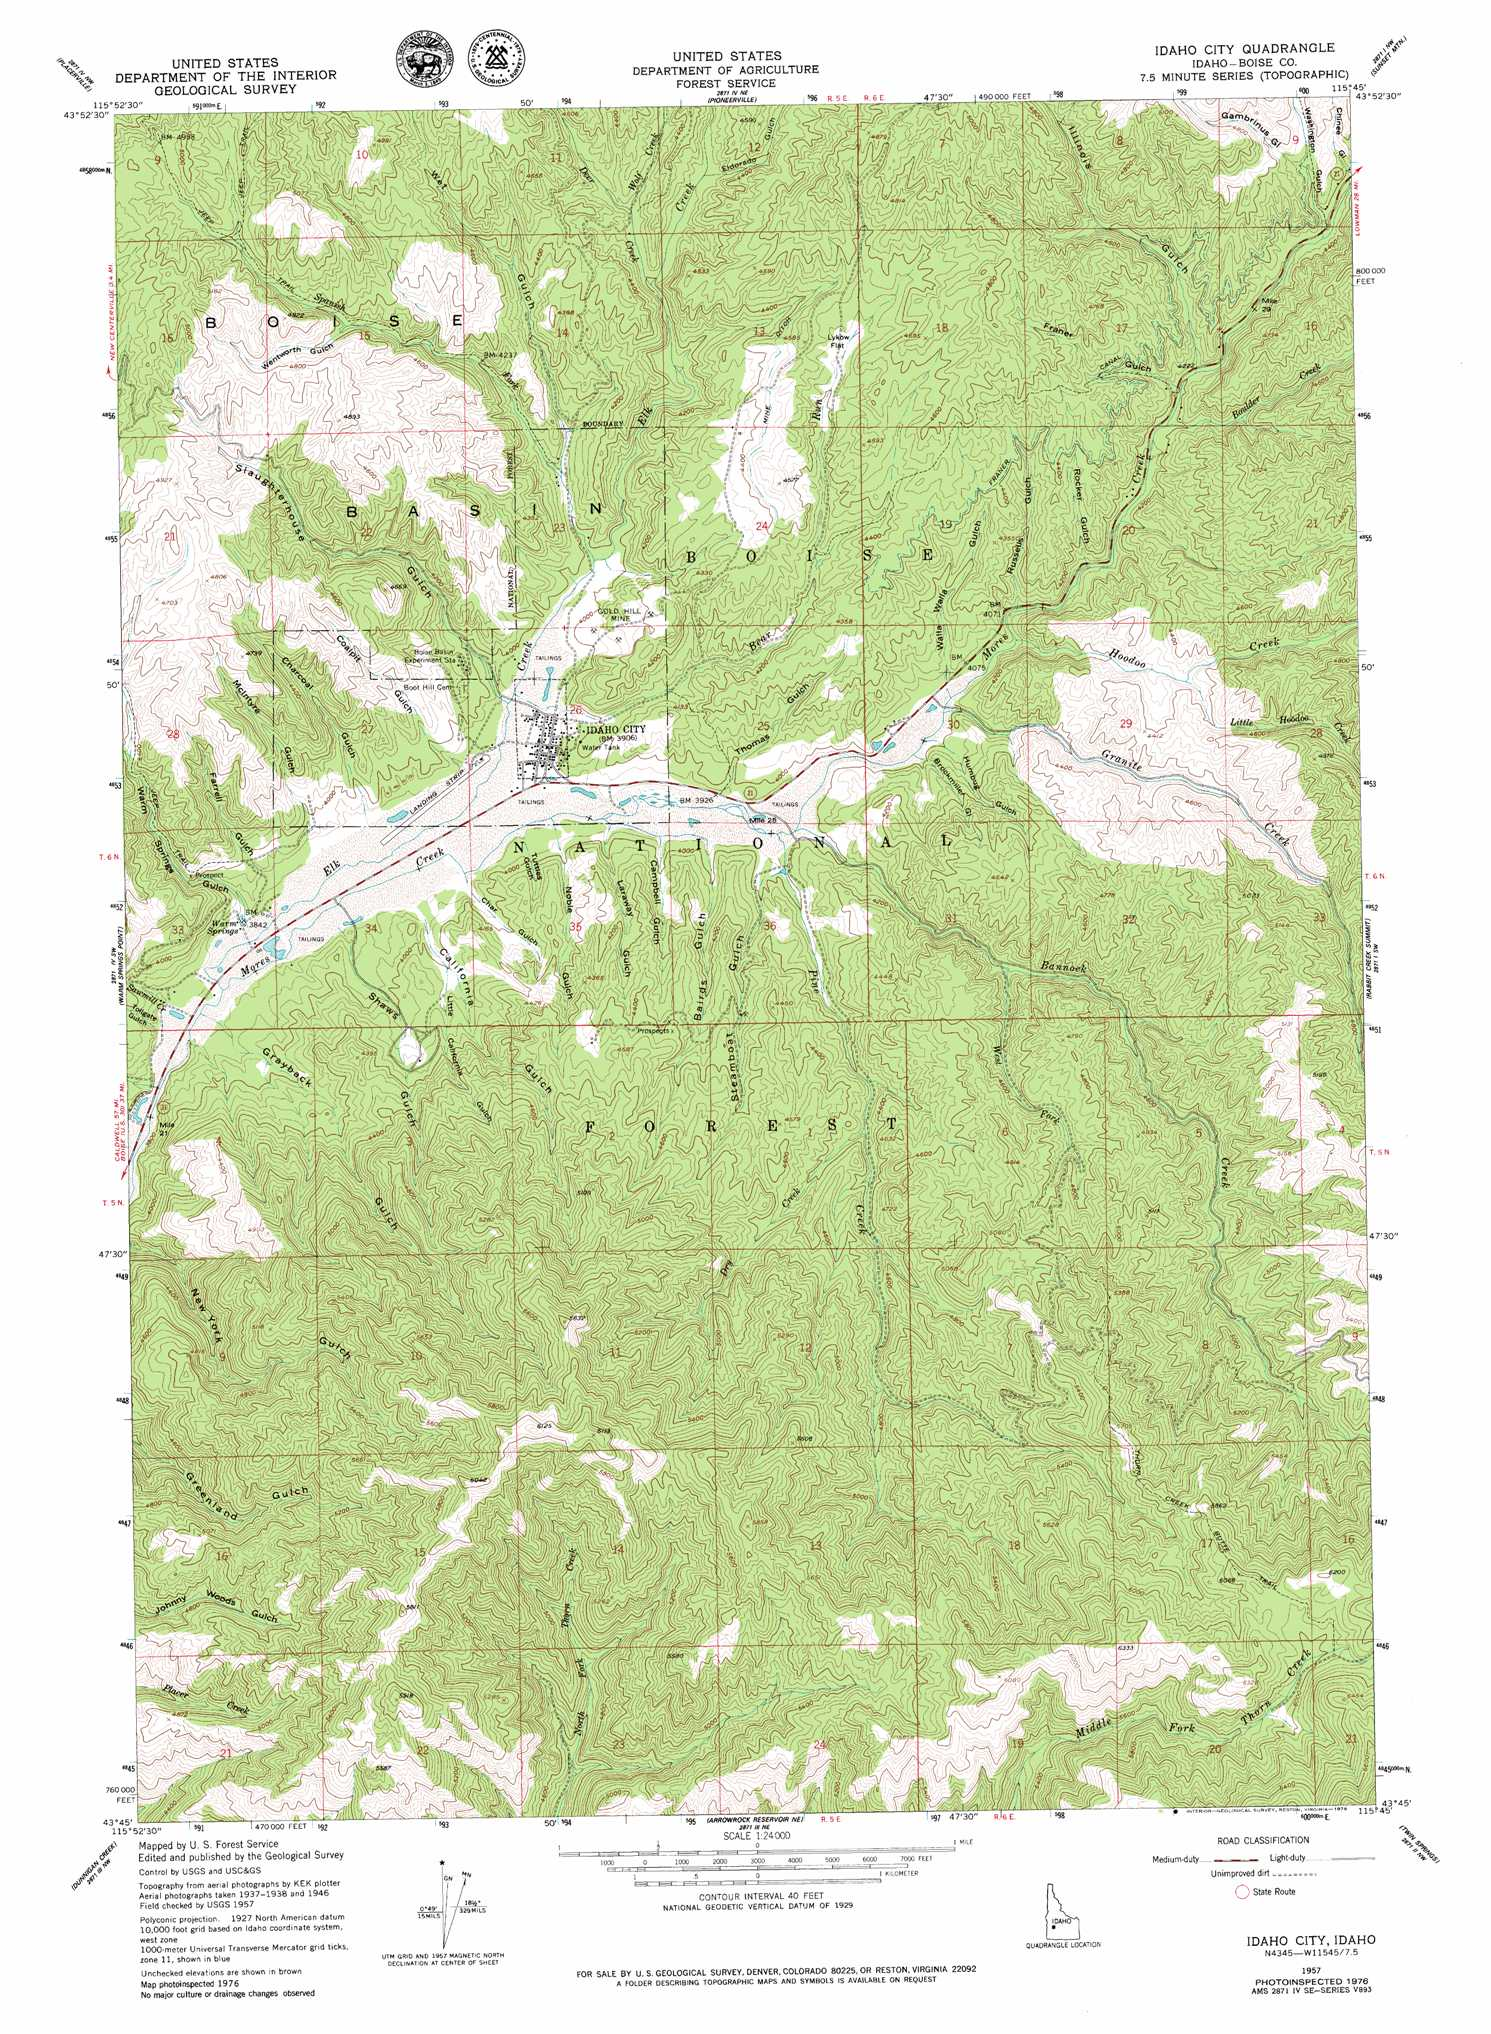 Idaho City topographic map, ID - USGS Topo Quad 43115g7